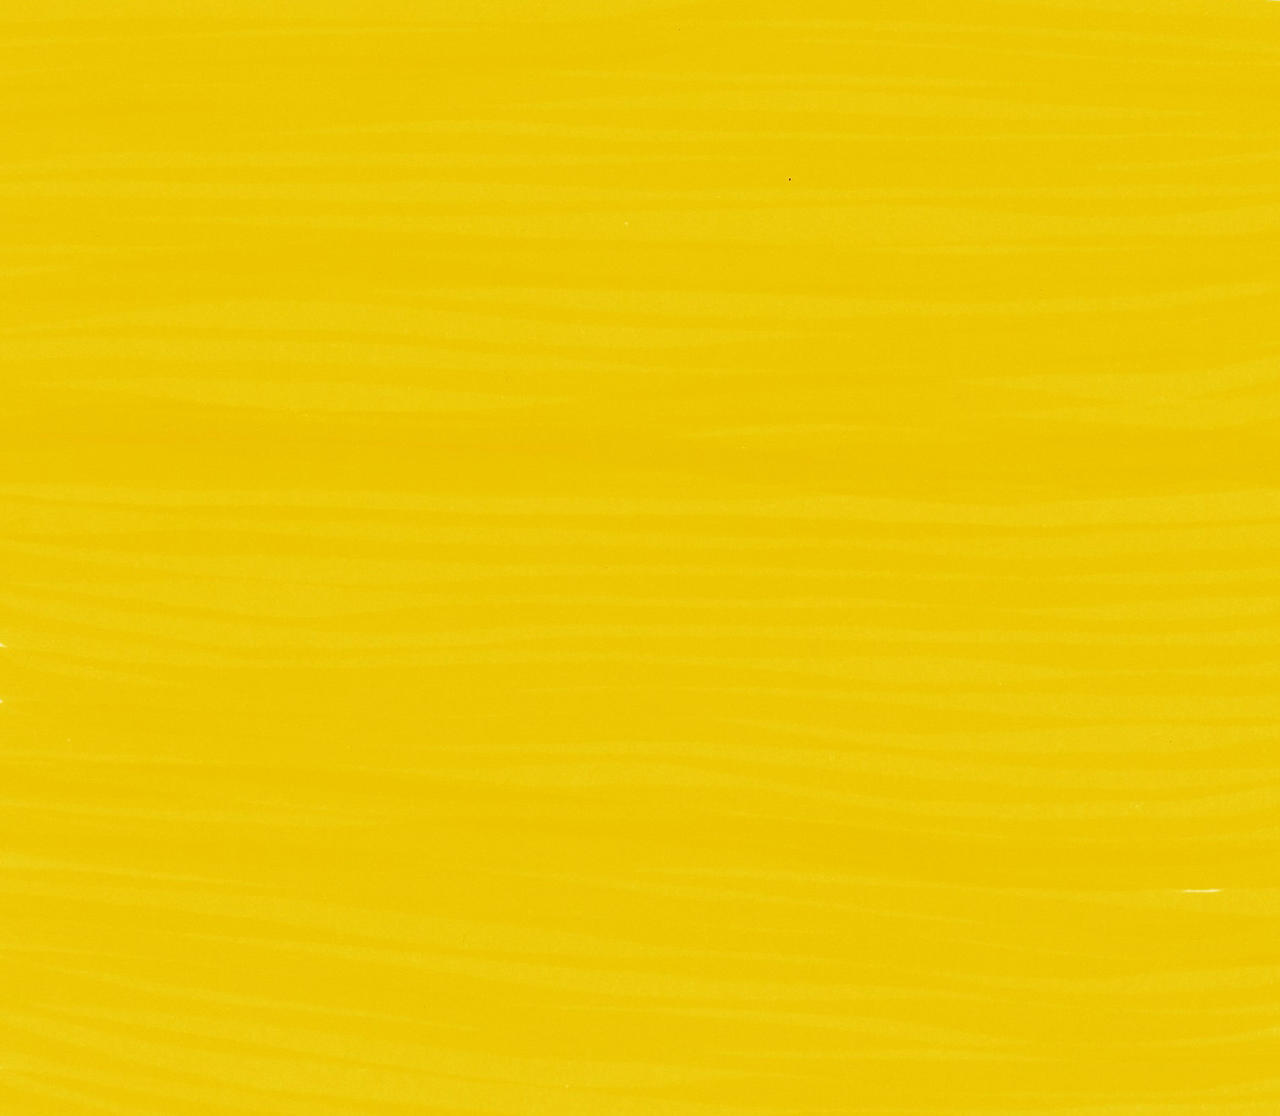 Yellow Marker Texture Stock